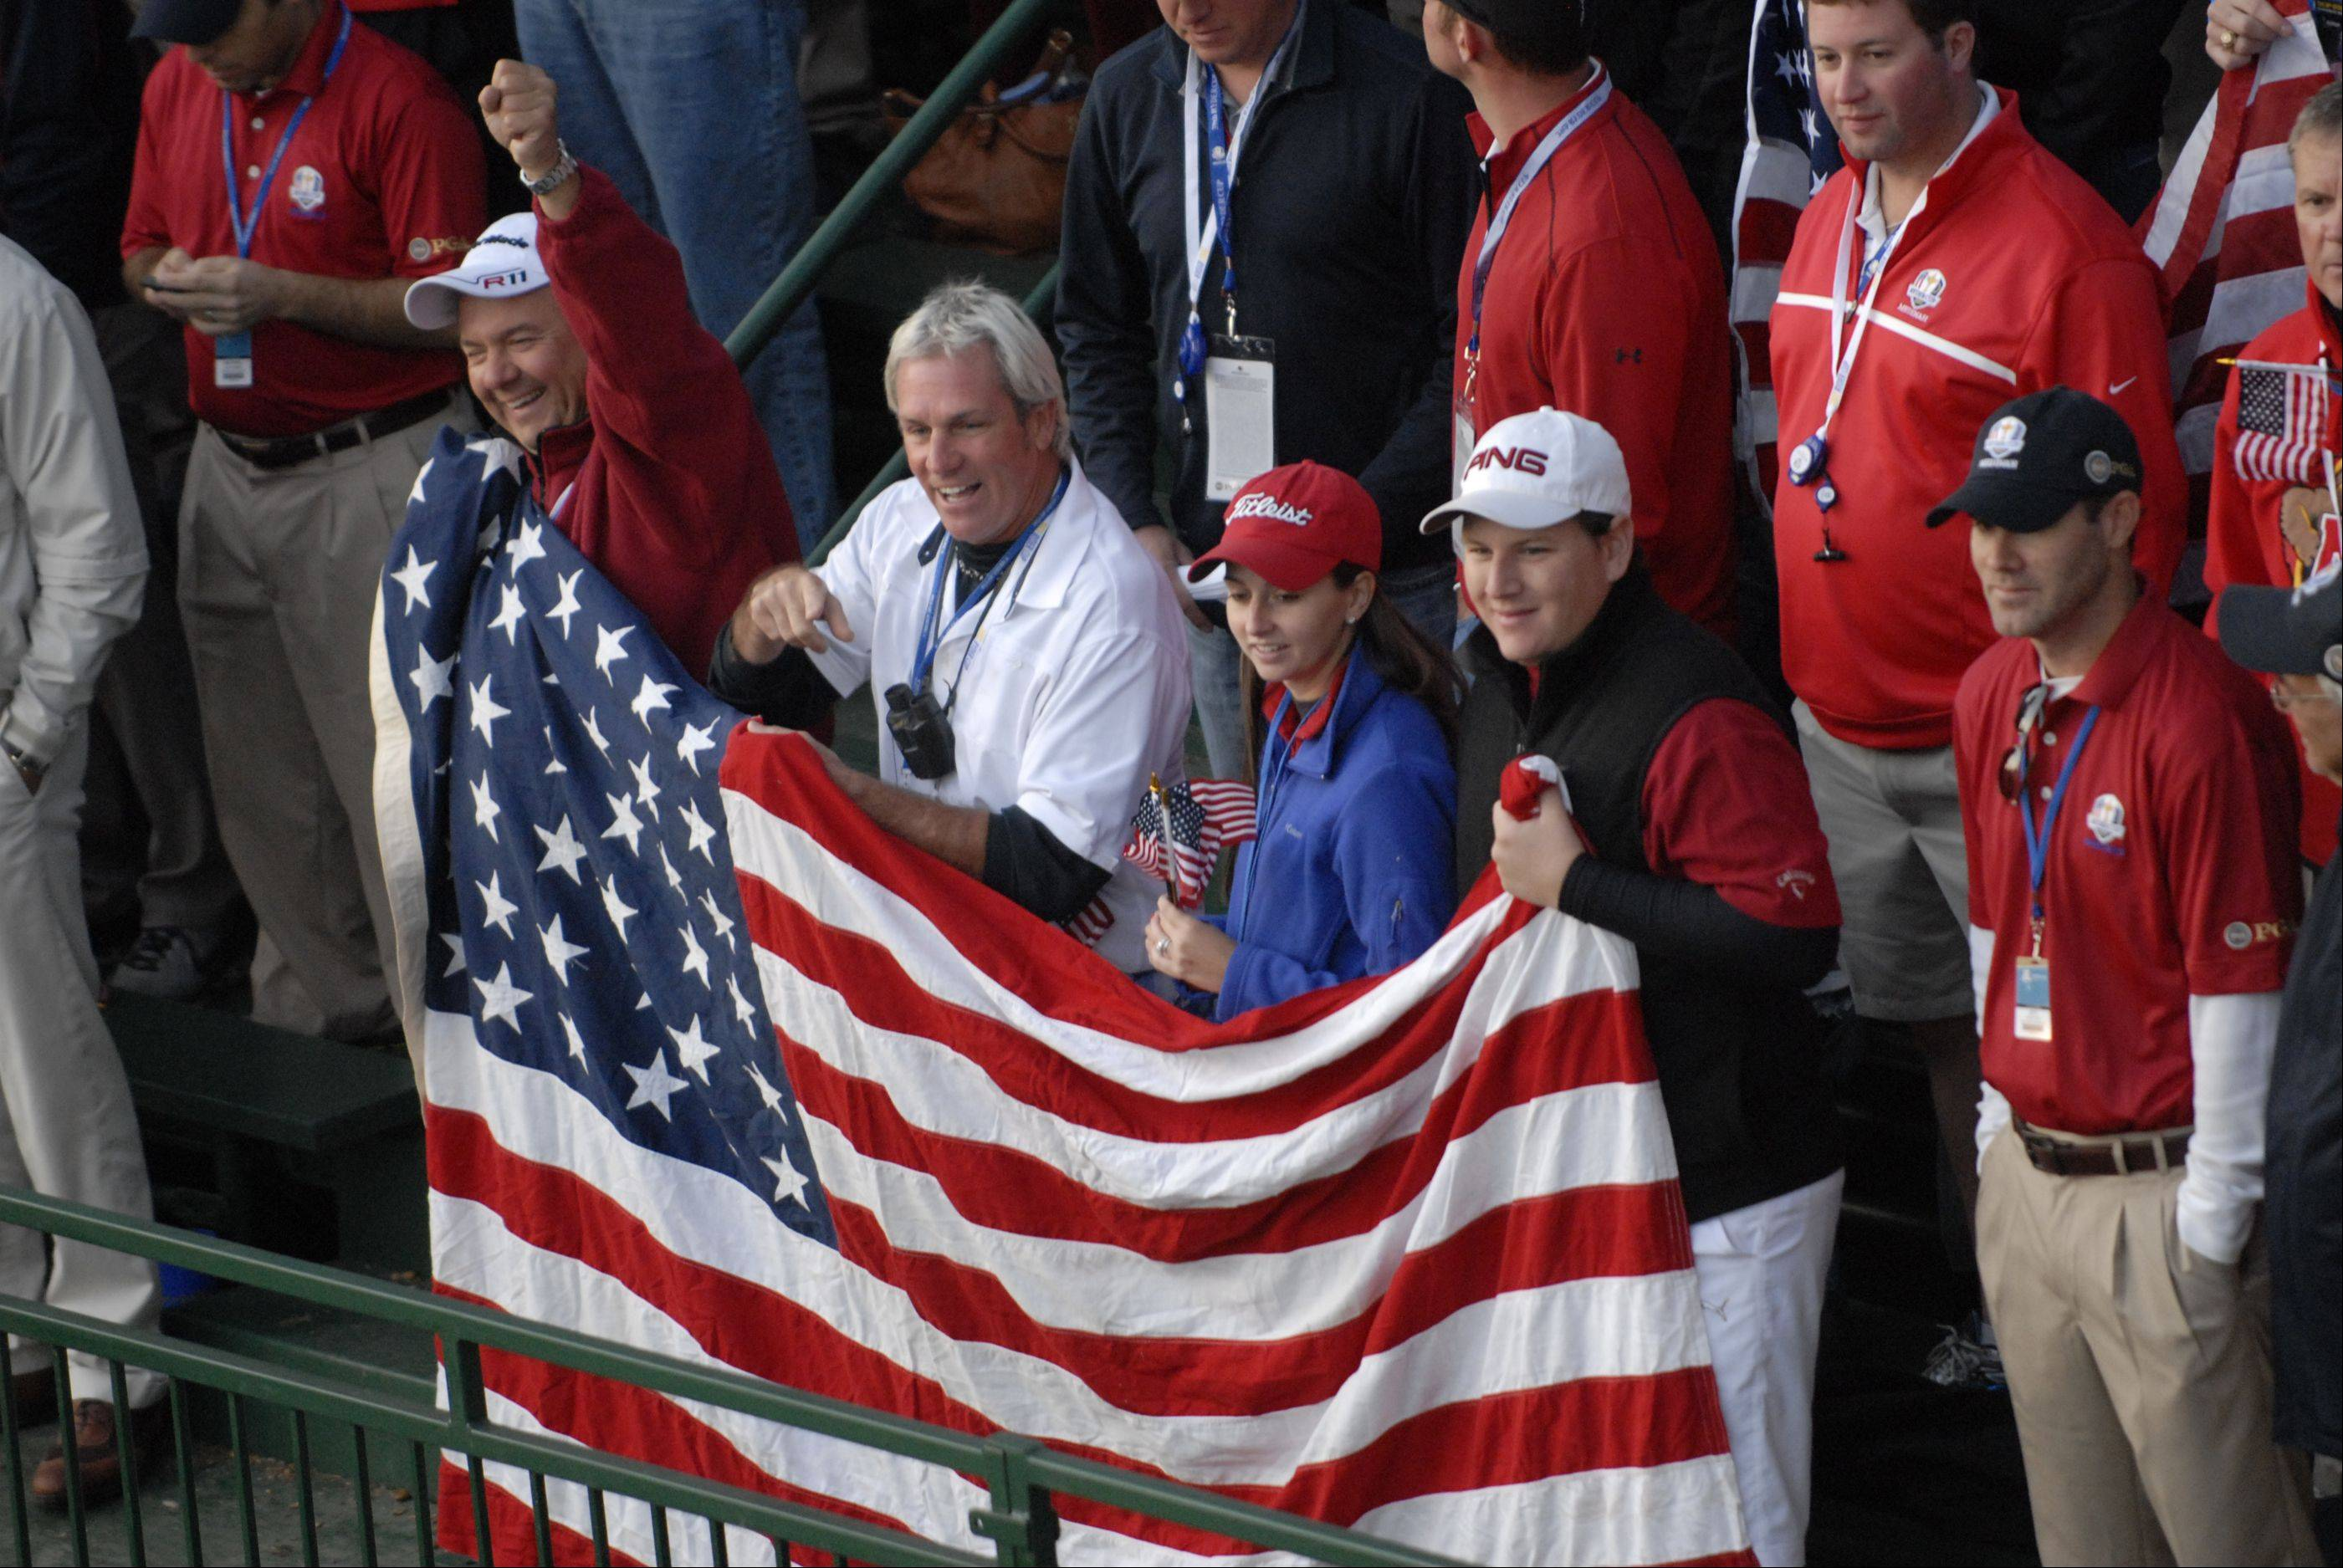 Team USA fans show their support at the first tee Saturday morning during day 2 of the 2012 Ryder Cup at Medinah Country Club.